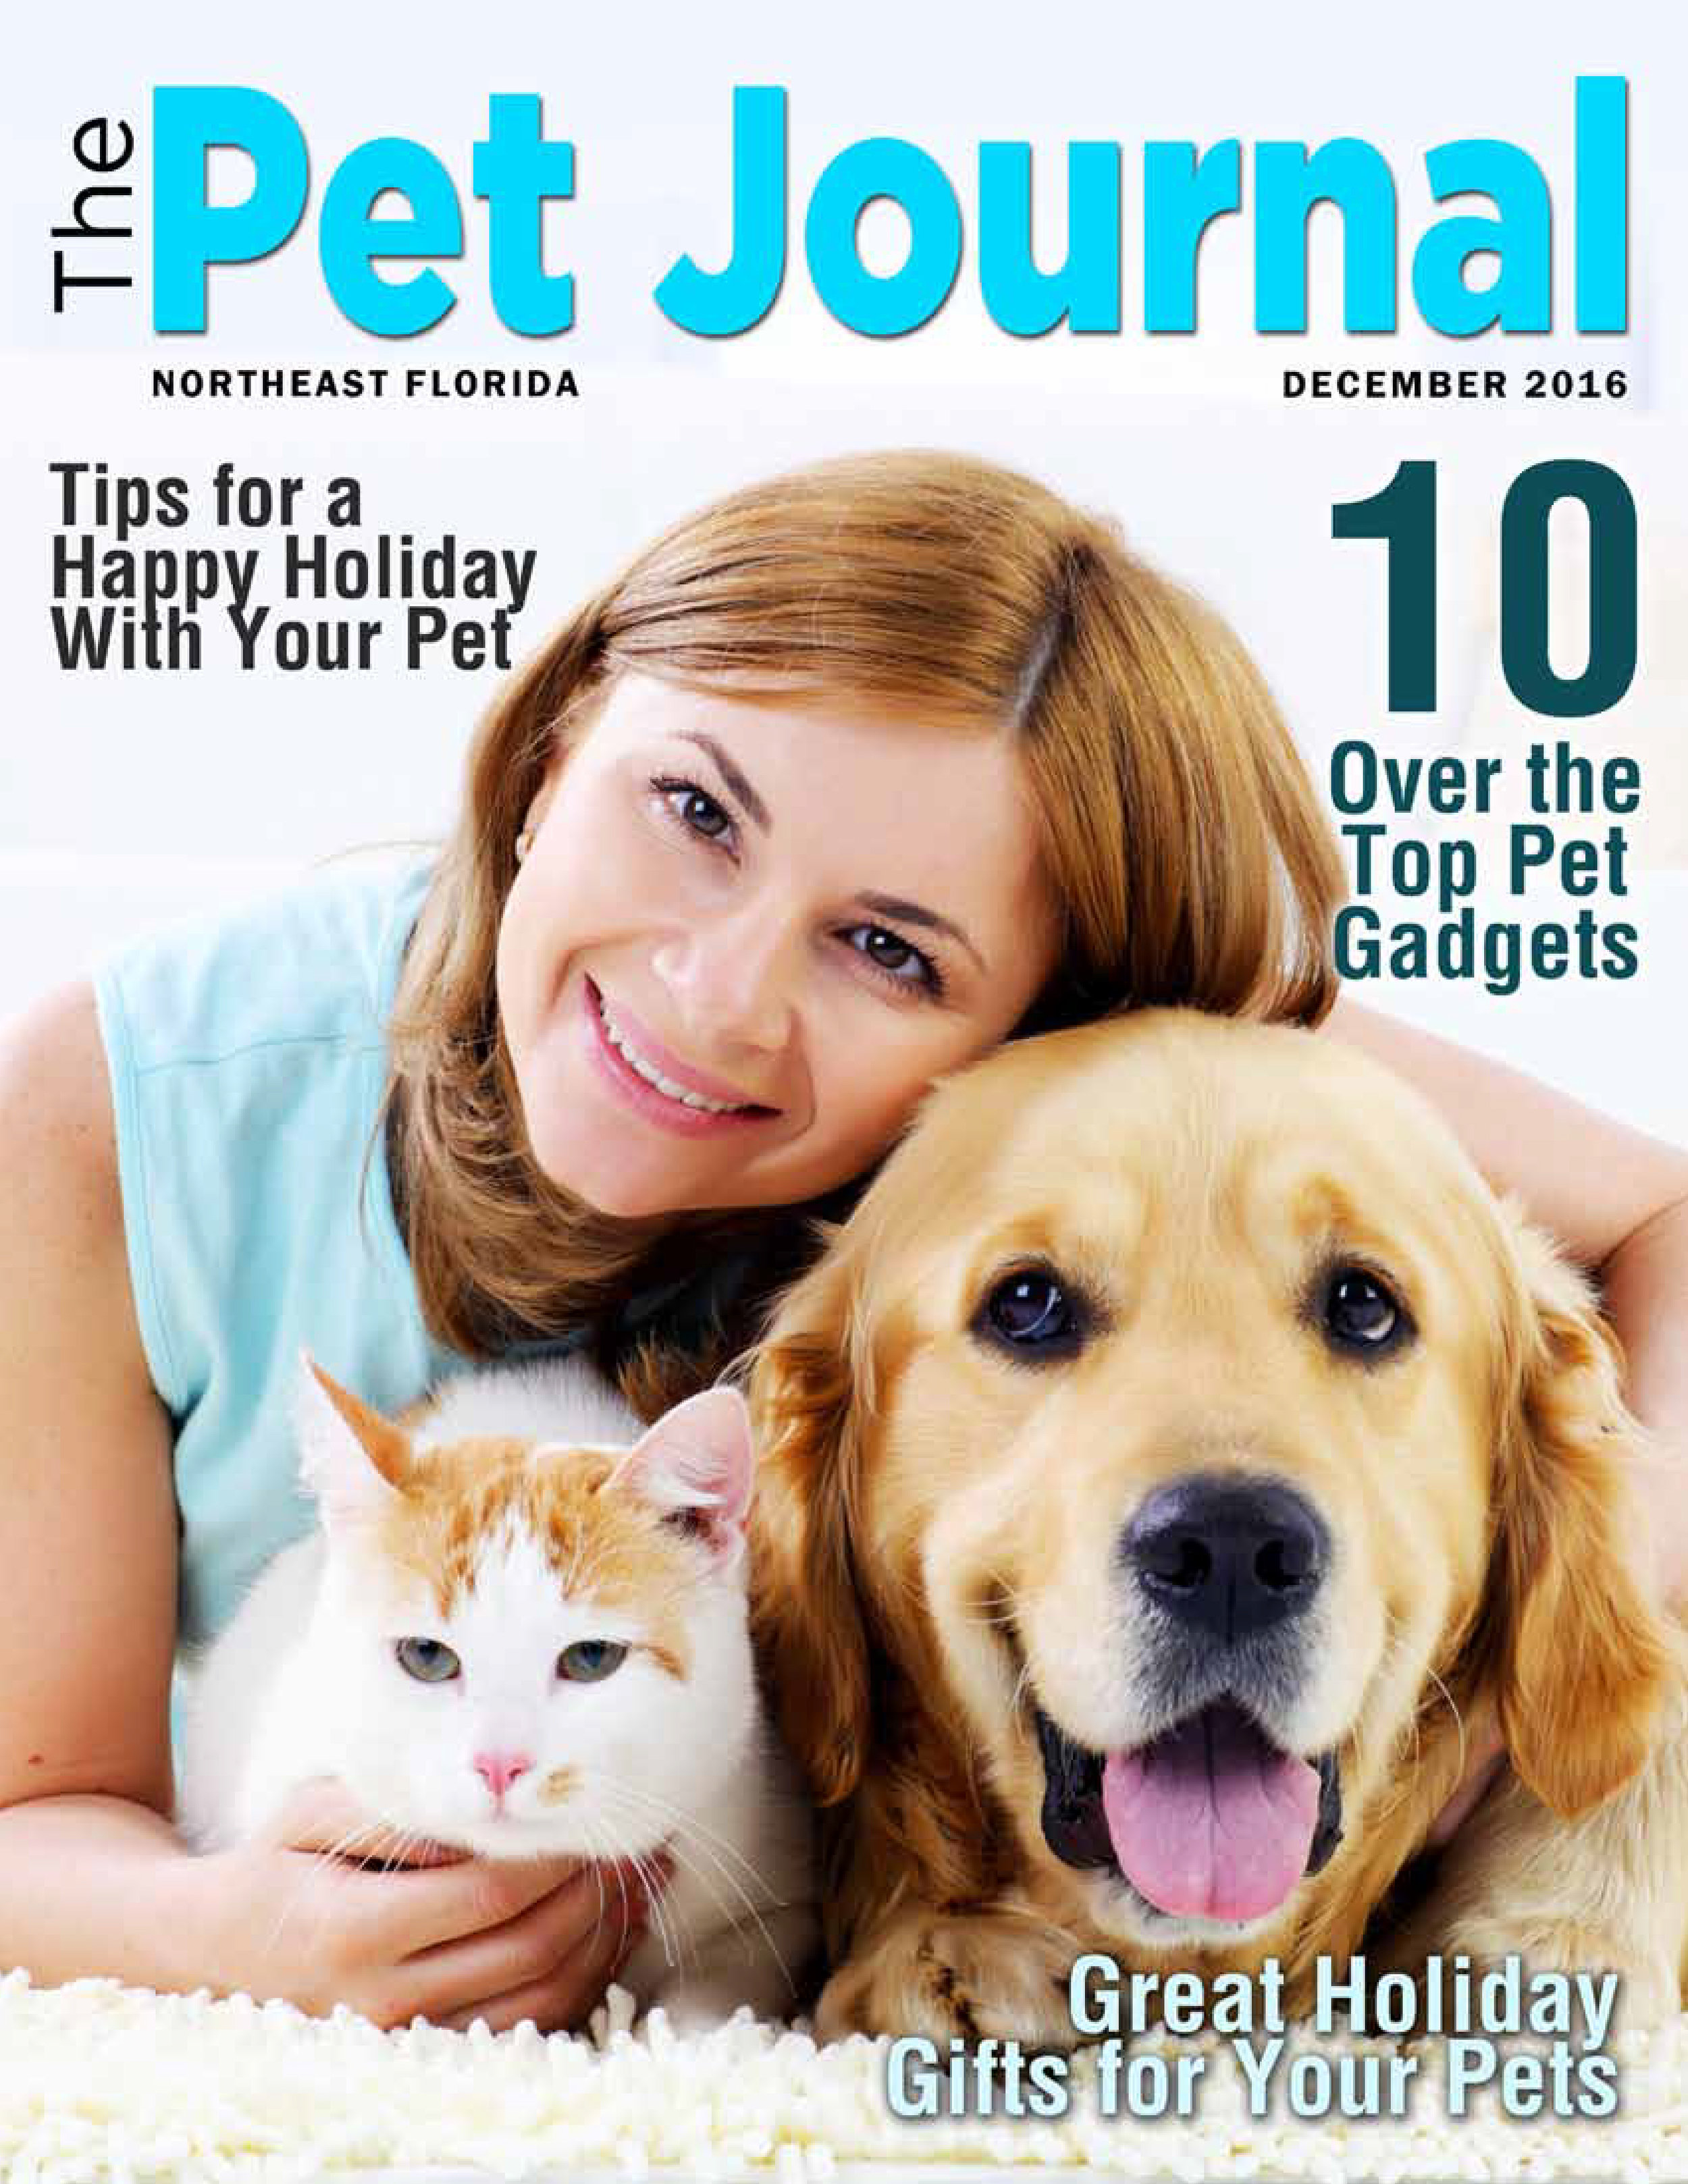 The Pet Journal December 2016